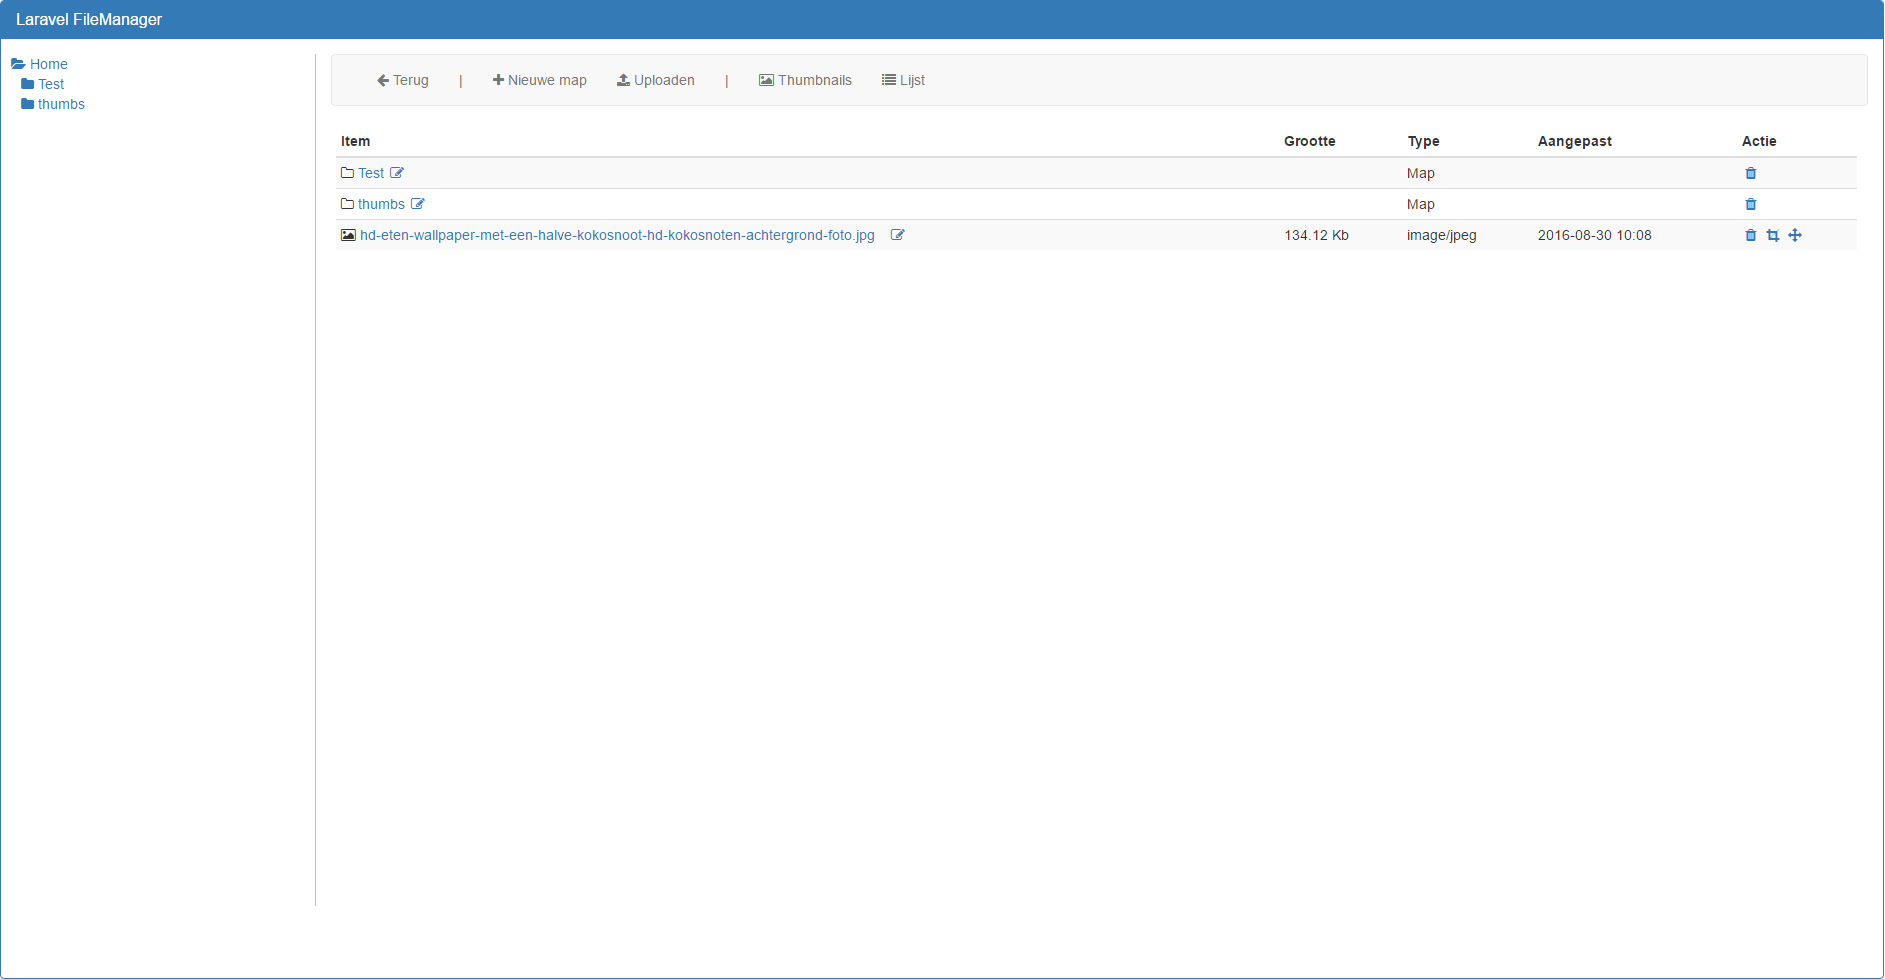 FileManager screenshot 1